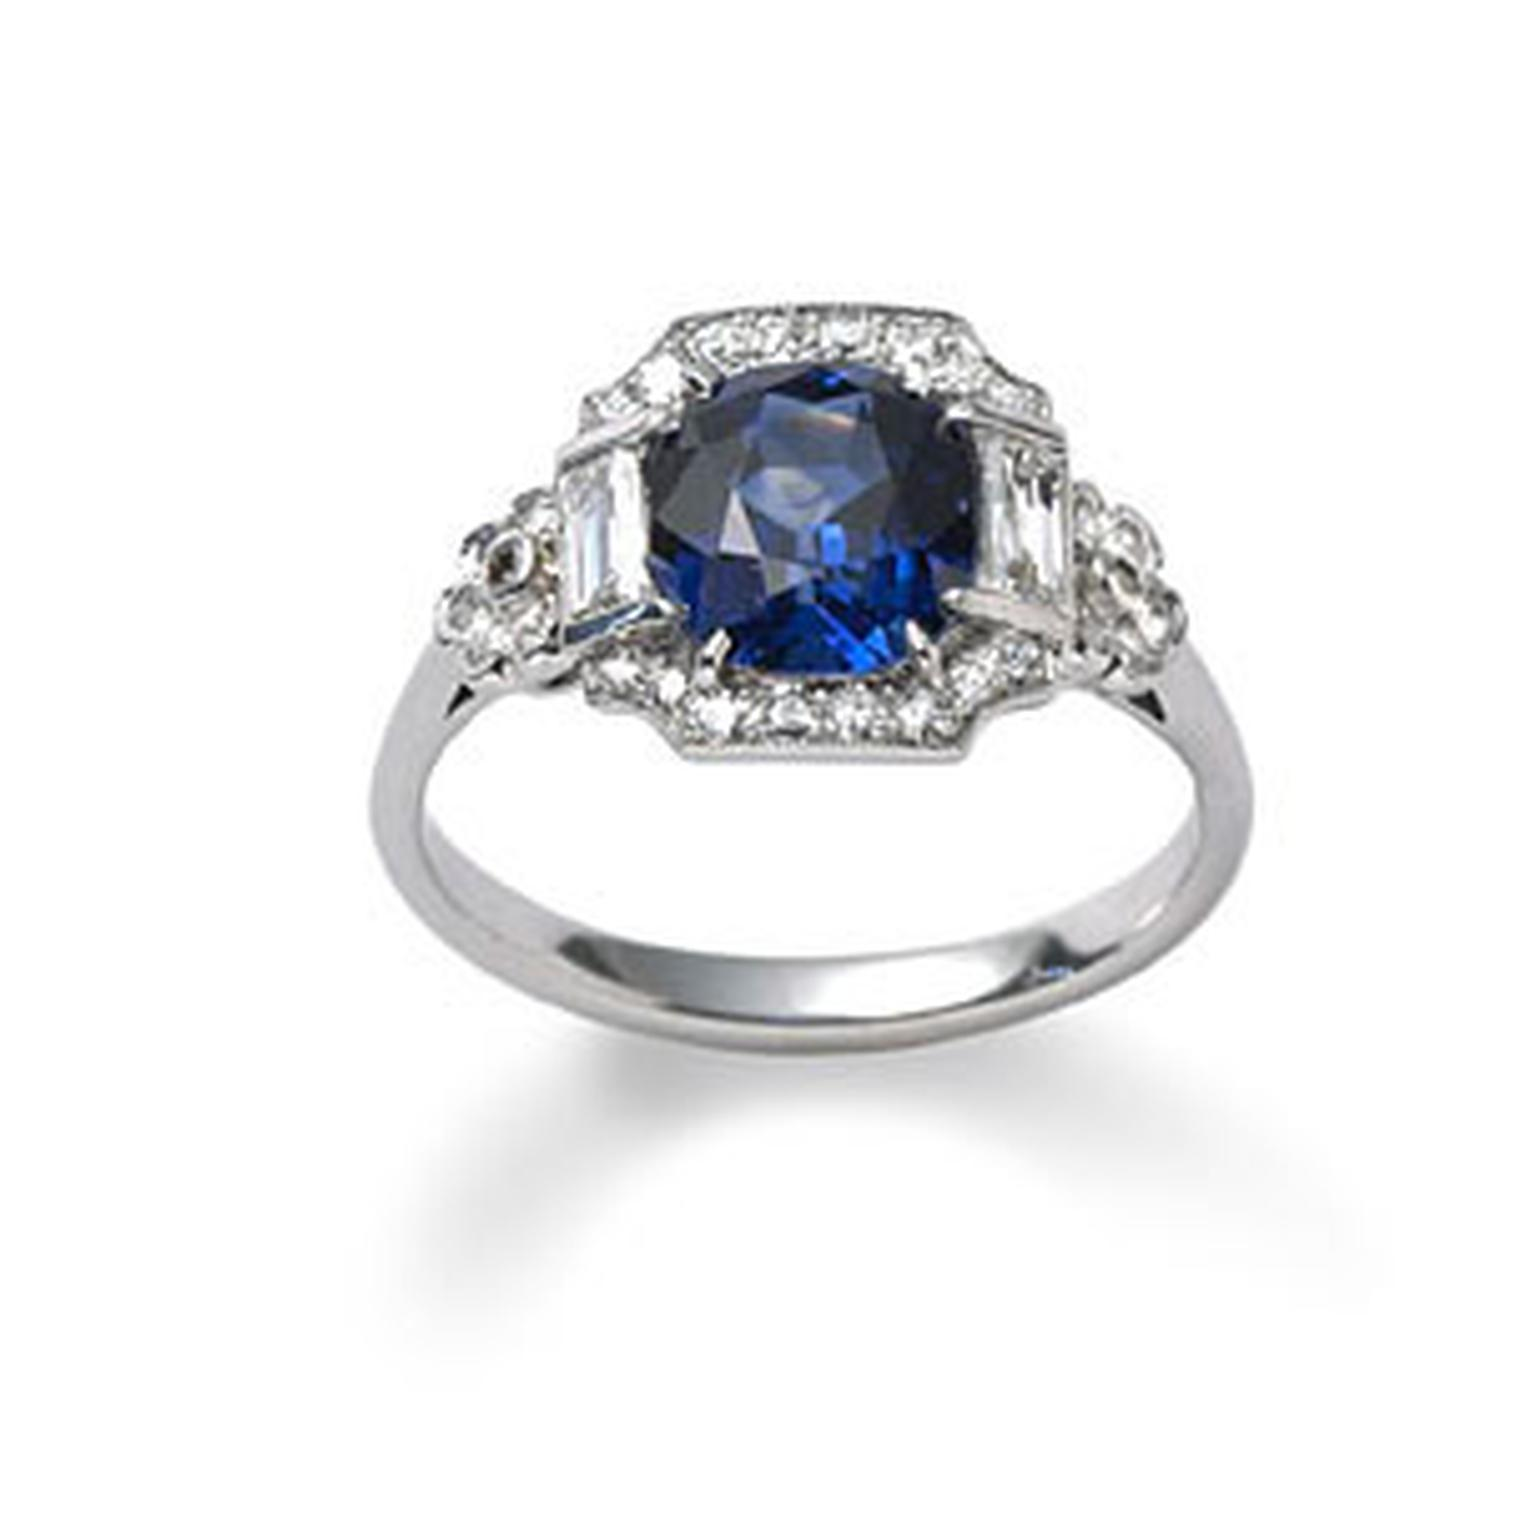 Burlington-Arcade-An-Art-Deco-sapphire-and-diamond-ring-of-exceptional-craftsmanship-set-in-platinum